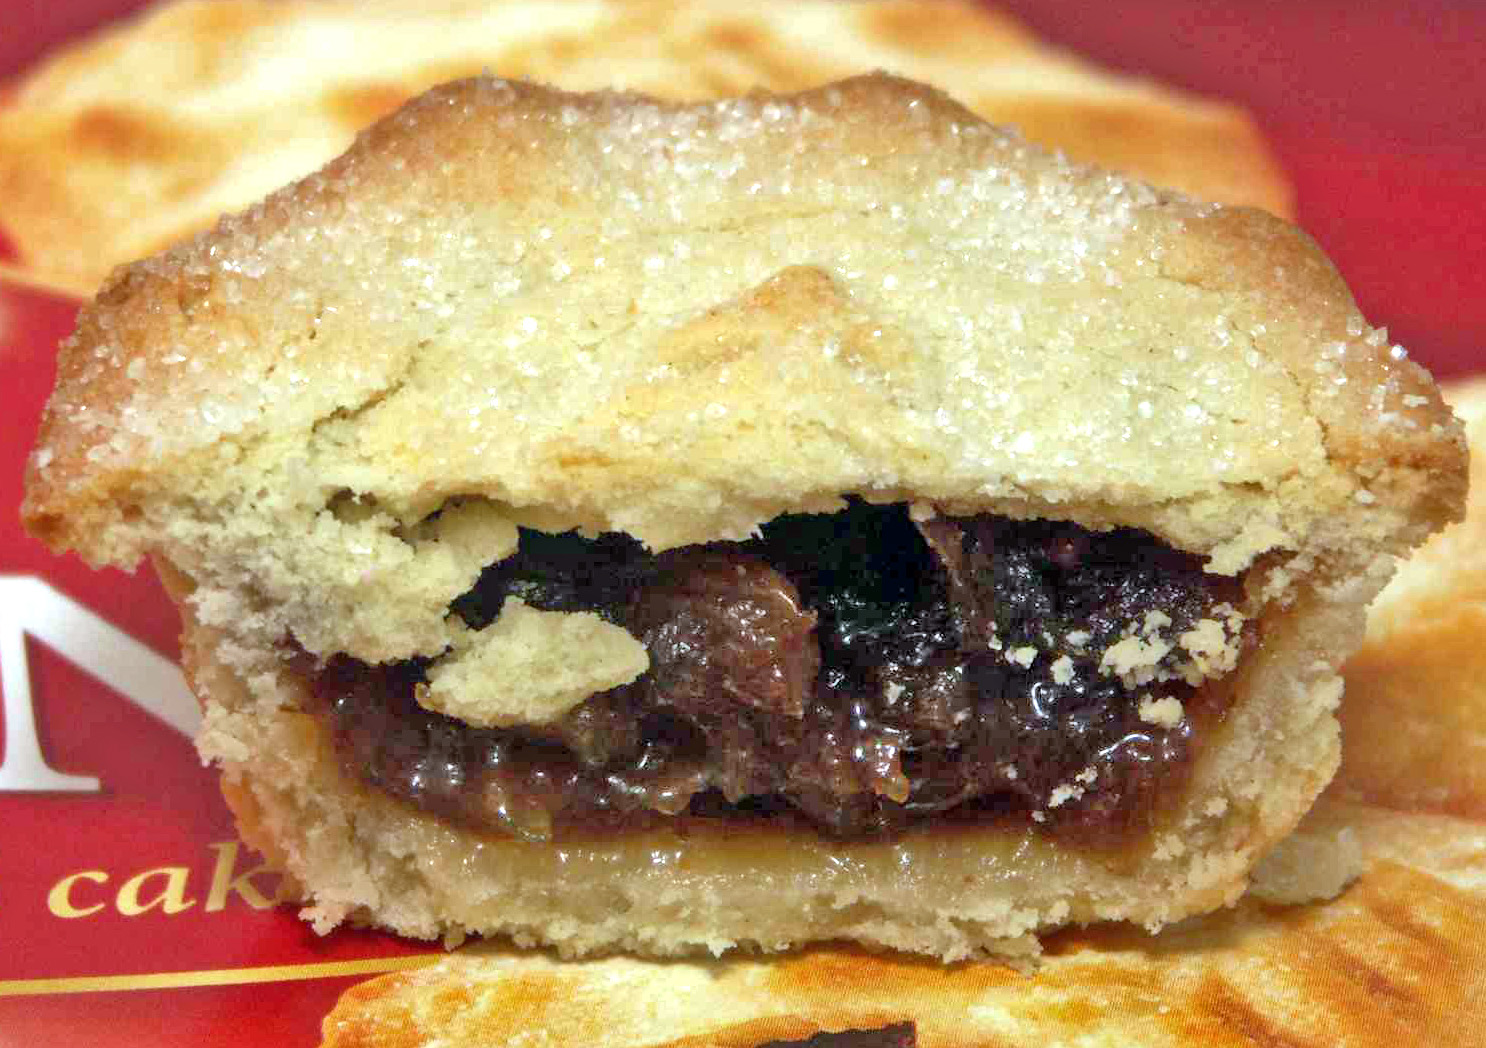 Mince pie wikipedia for English mincemeat recipe